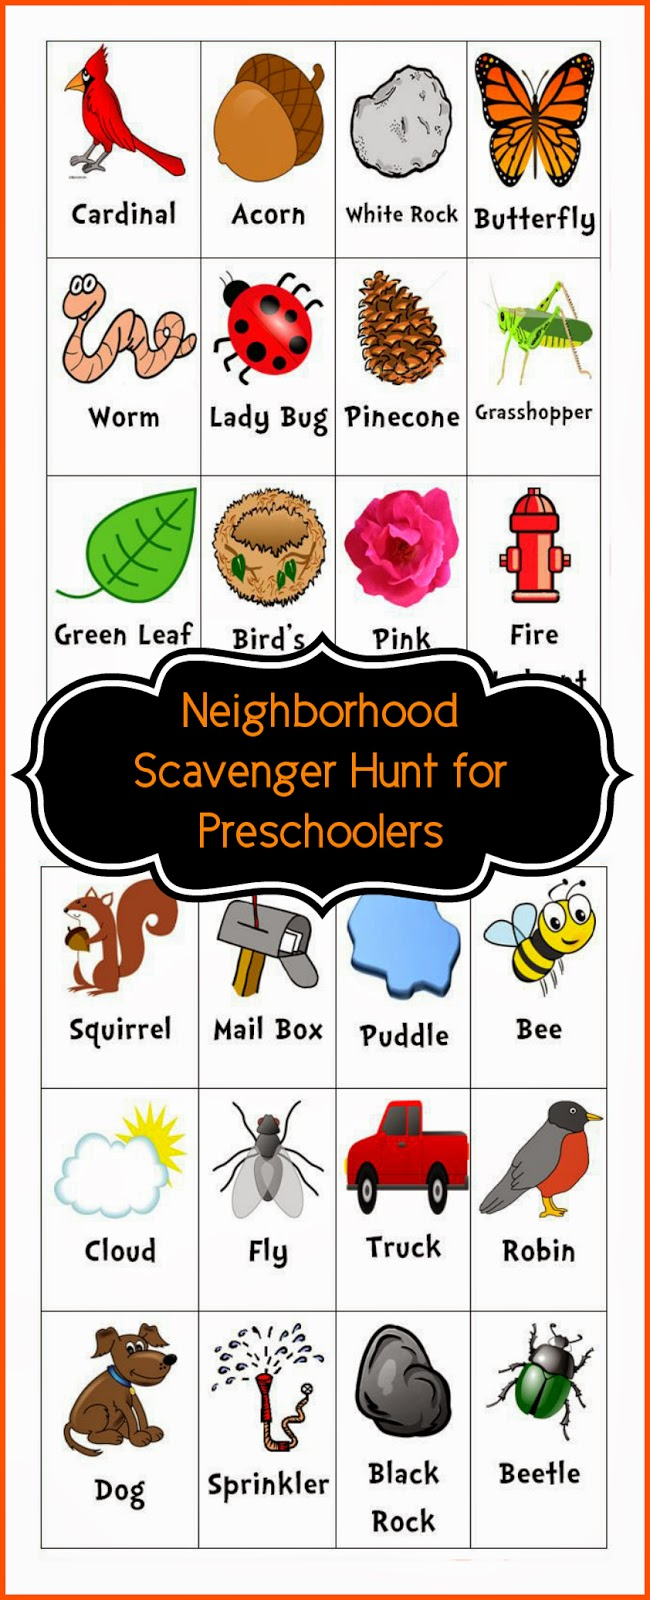 1 2 2 skeleton scavenger hunt Use the internet resources from your scavenger hunt to help you find the answers  and pictures for your  1 click on the link to take a tour of the skeleton, then try to  put the skeleton together  2 mr bones, see if you can put him back together.